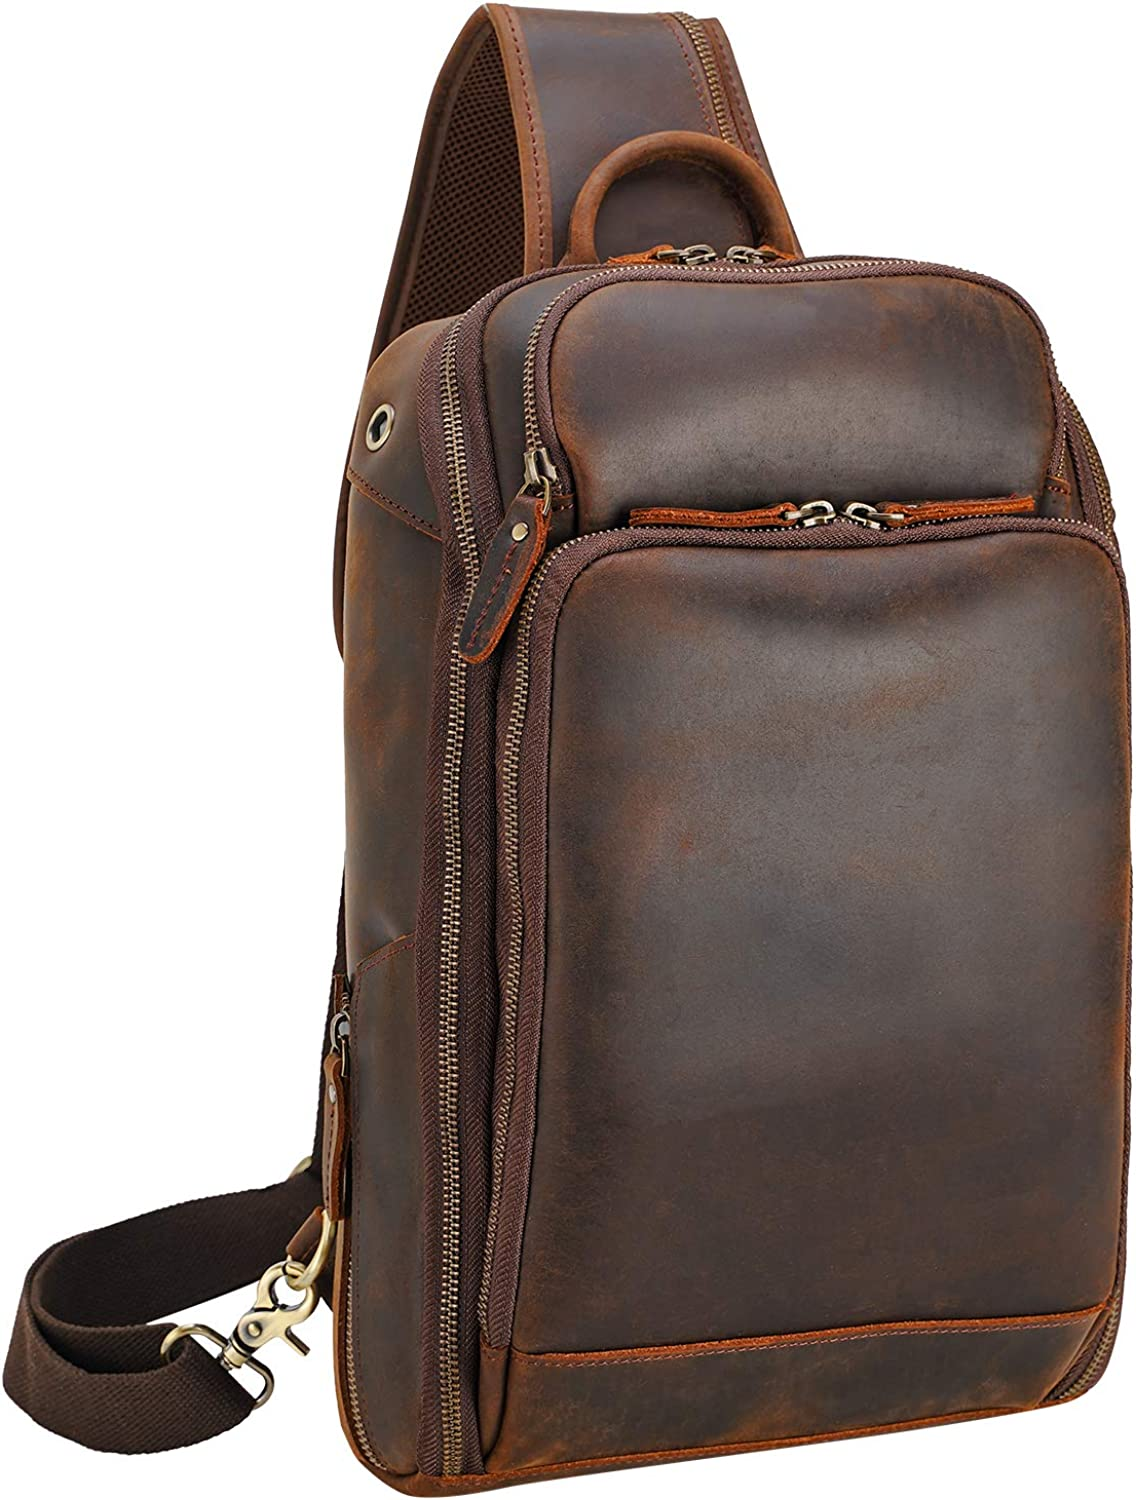 Polare Sling Bag Travel Outdoor Daypack Backpack For Men with Full Grain Leather Fits 13.3'' 14.1'' Laptop